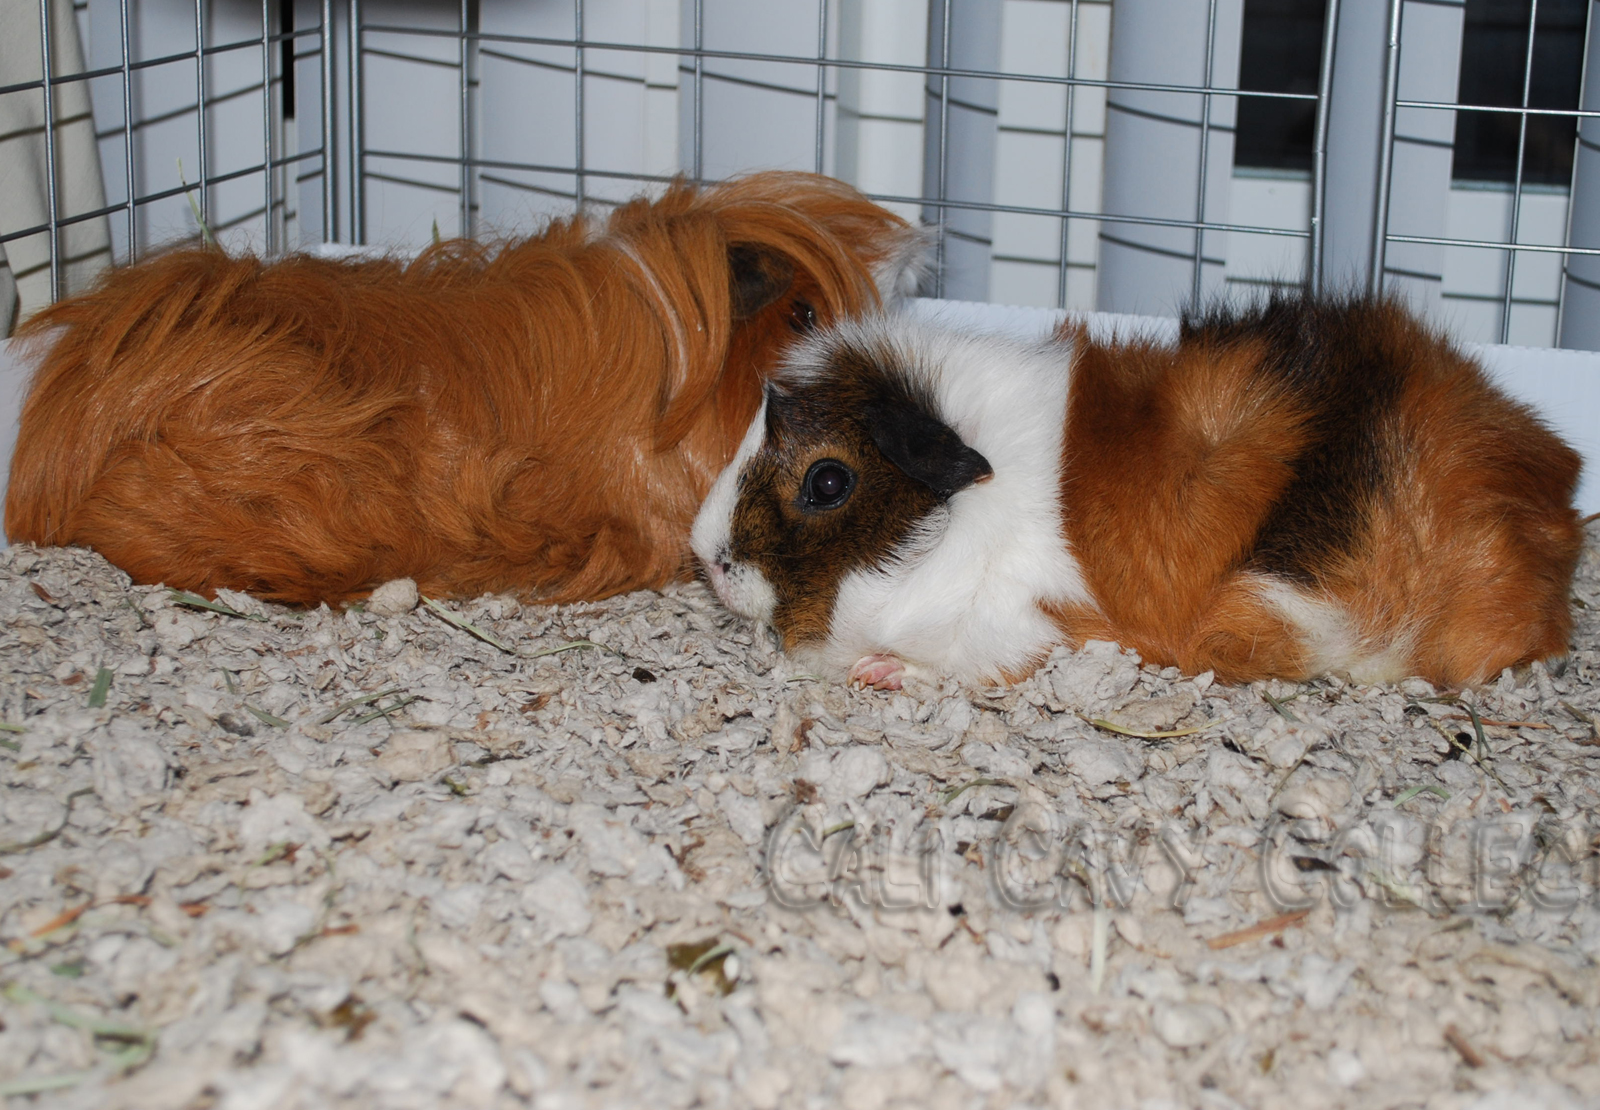 Which Carefresh Bedding Is Best For Guinea Pigs